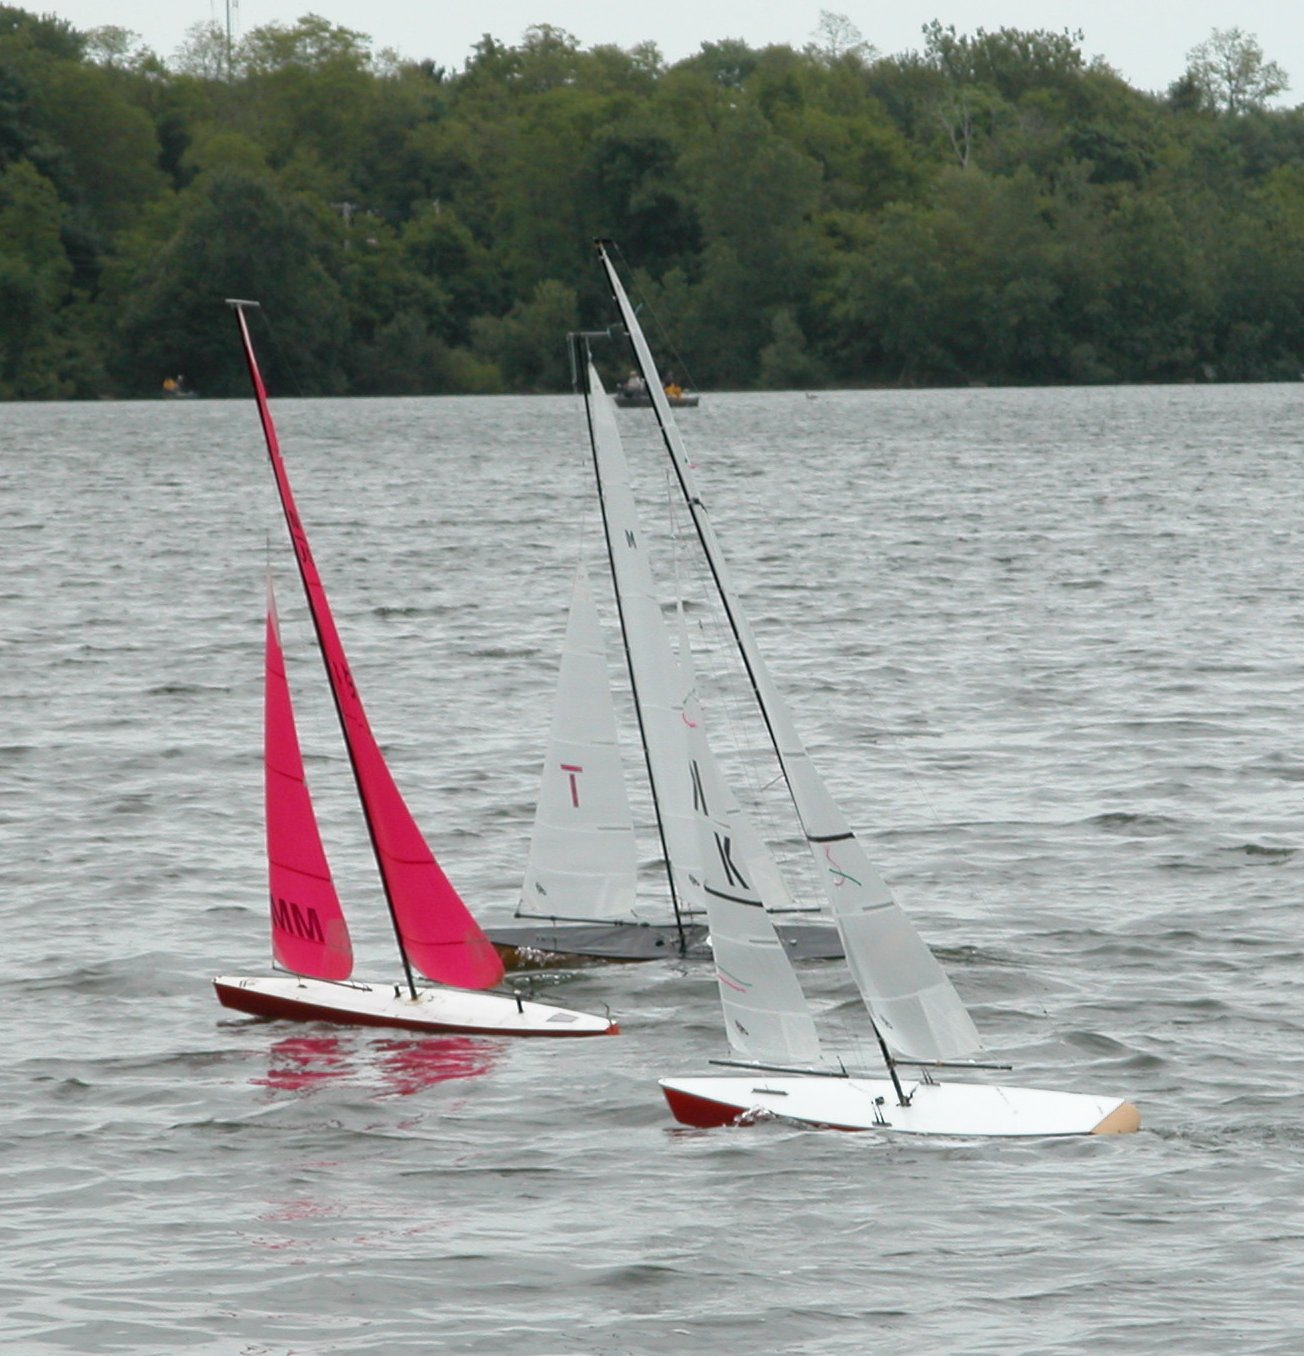 Sailing 50's on Lake Ronkonkoma, NY